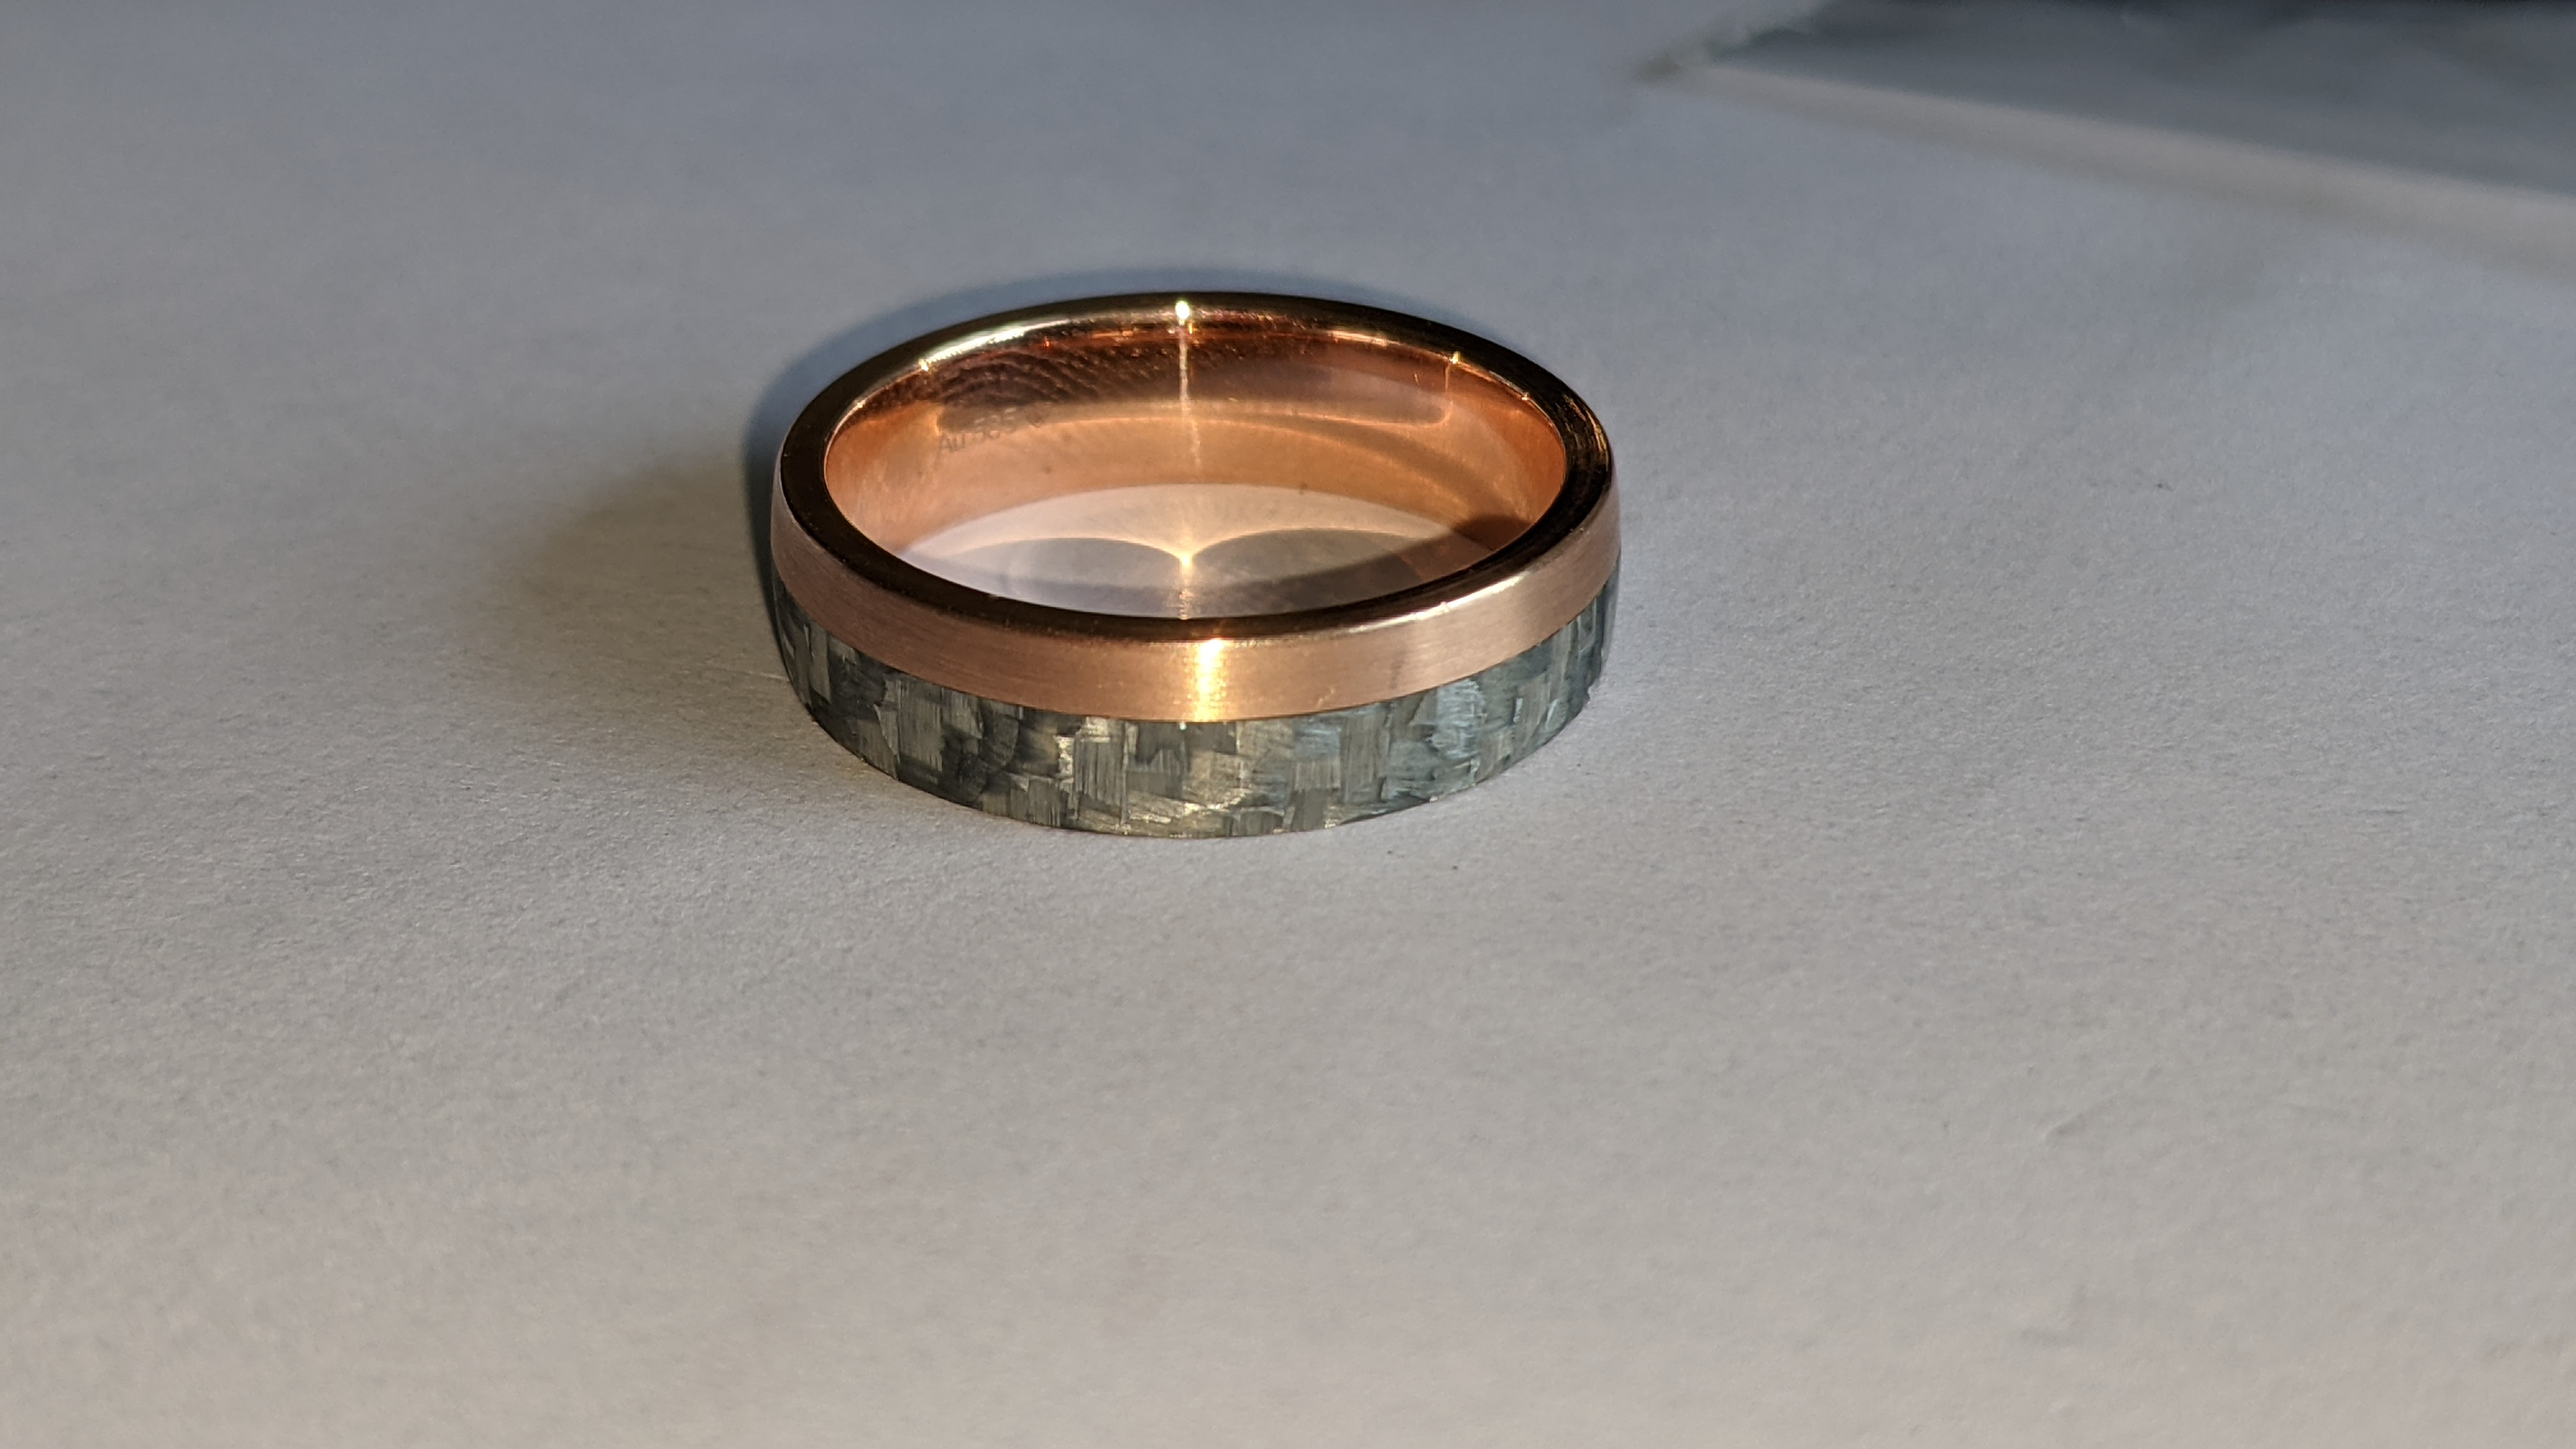 Carbon & 14ct rose gold ring RRP £705 - Image 7 of 13